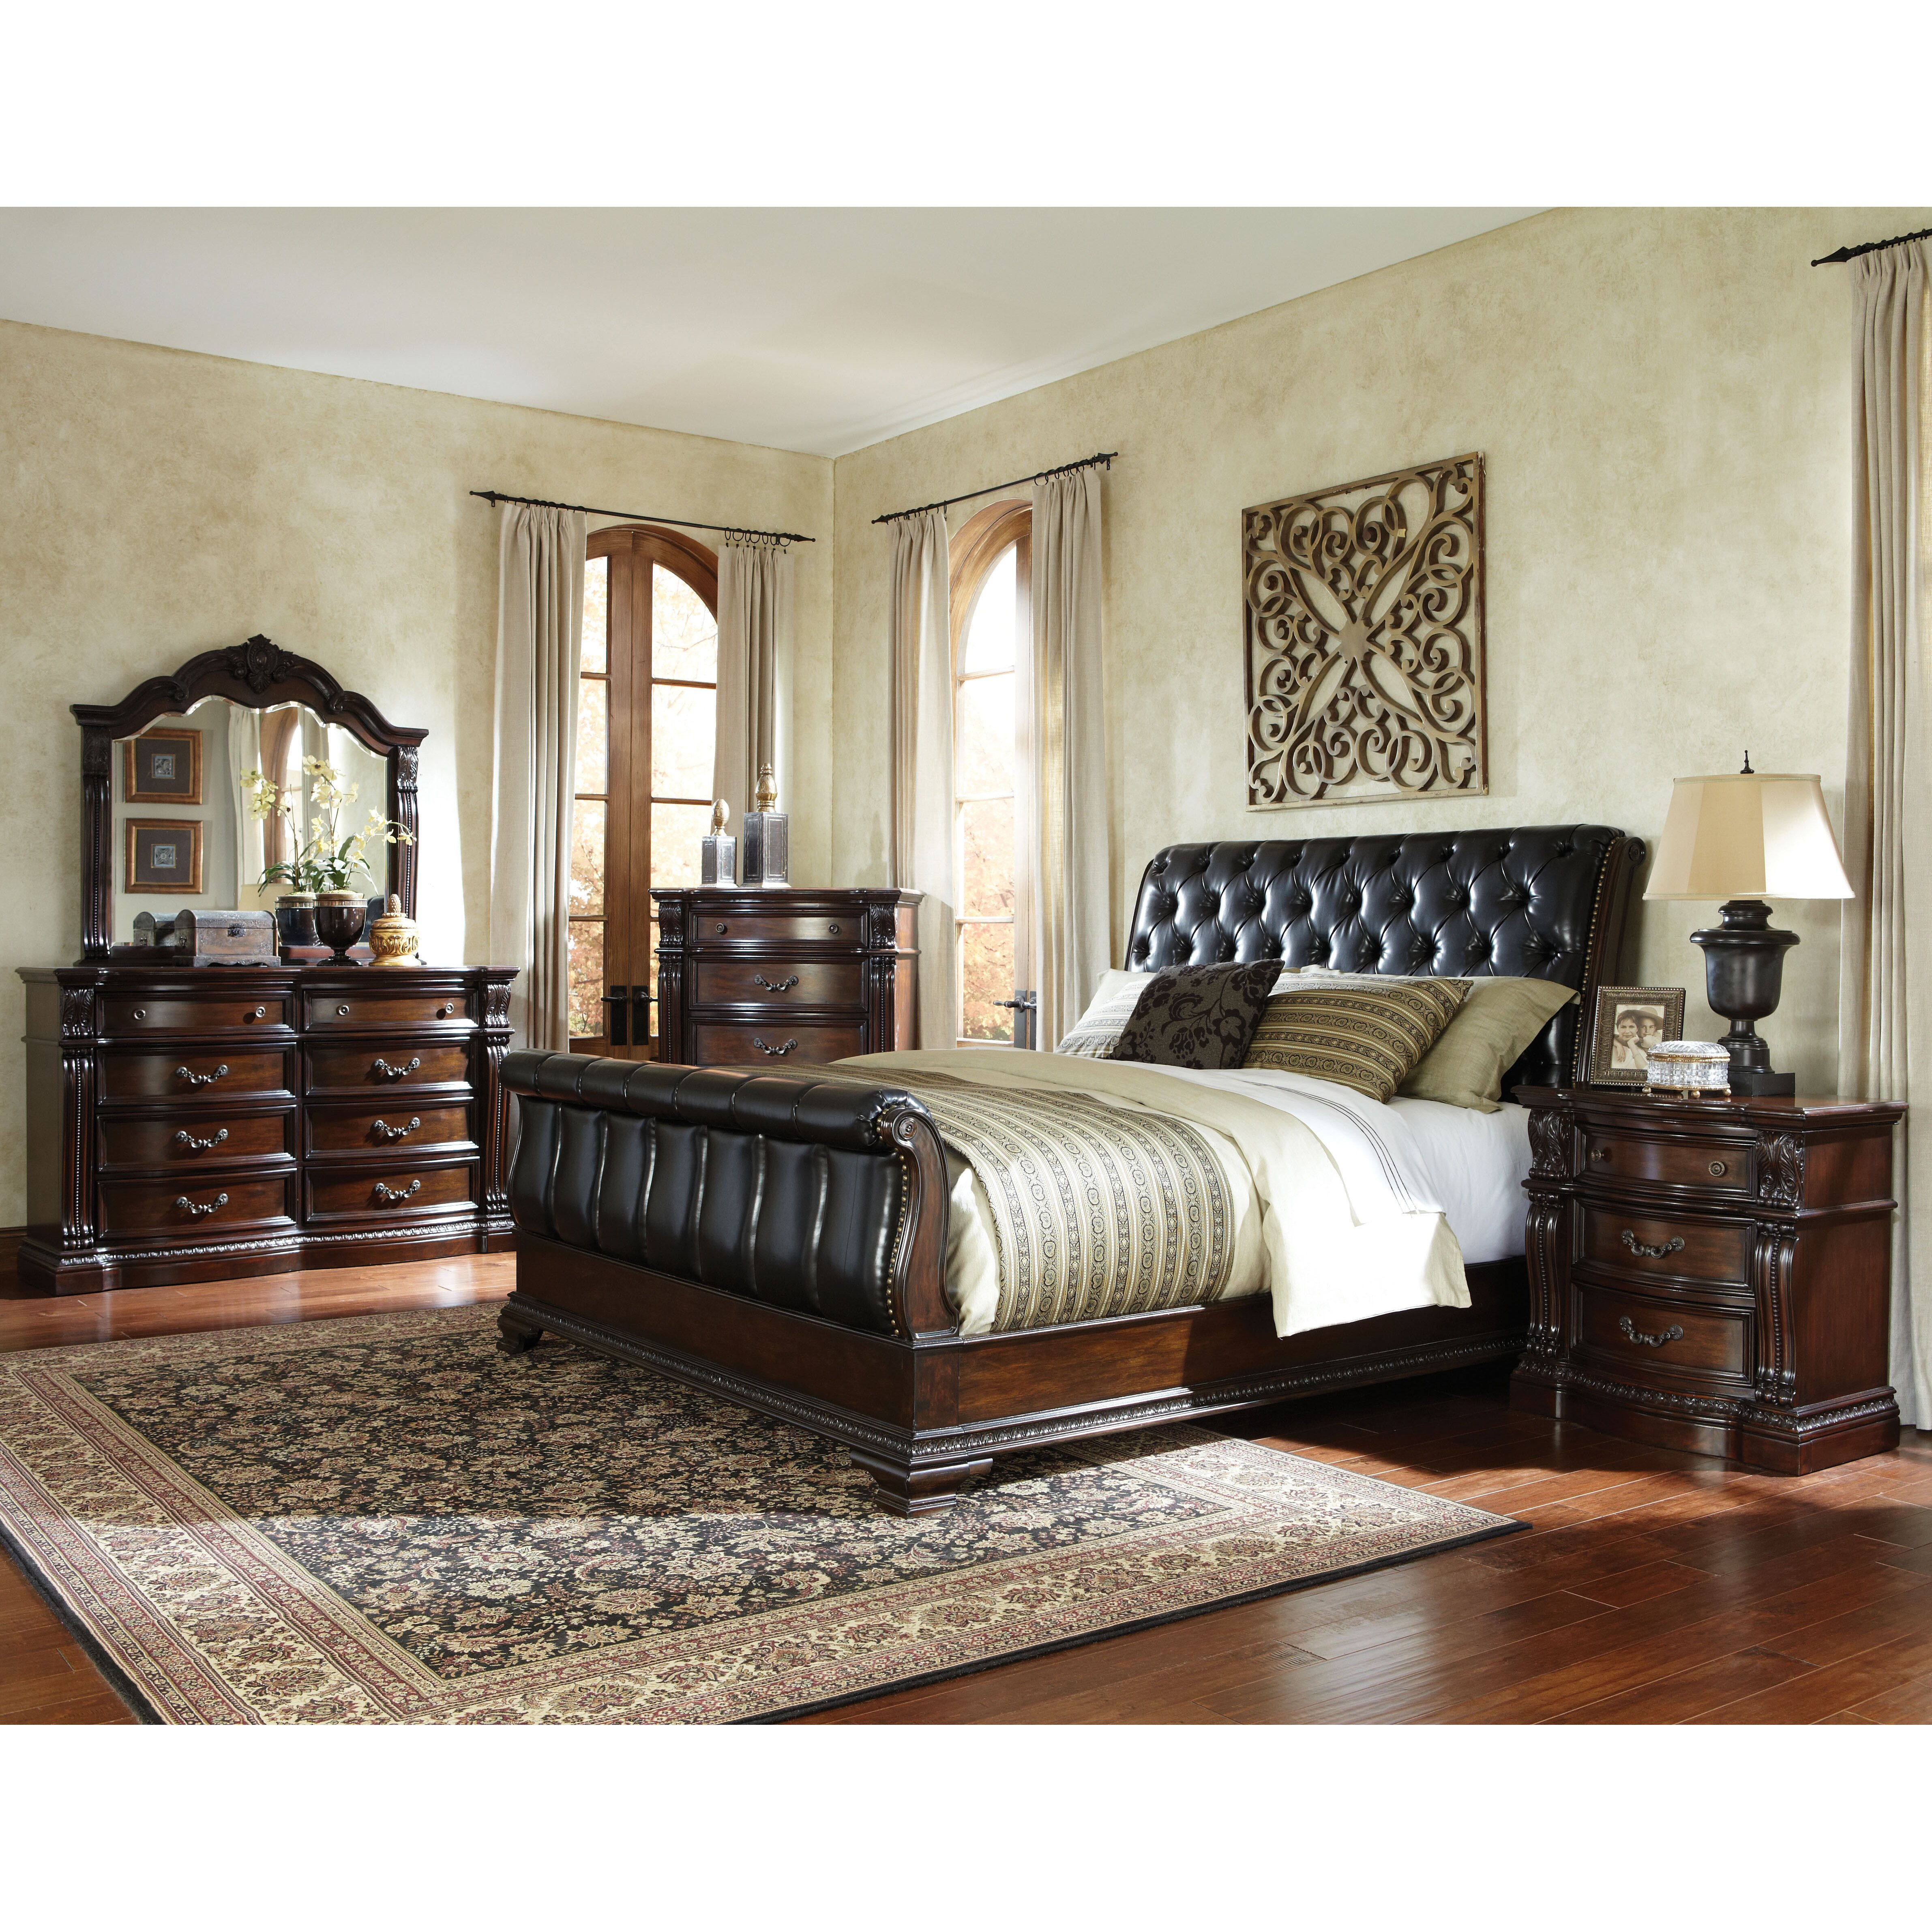 Sleigh Bed Bedroom Sets Standard Furniture Churchill Sleigh Customizable Bedroom Set